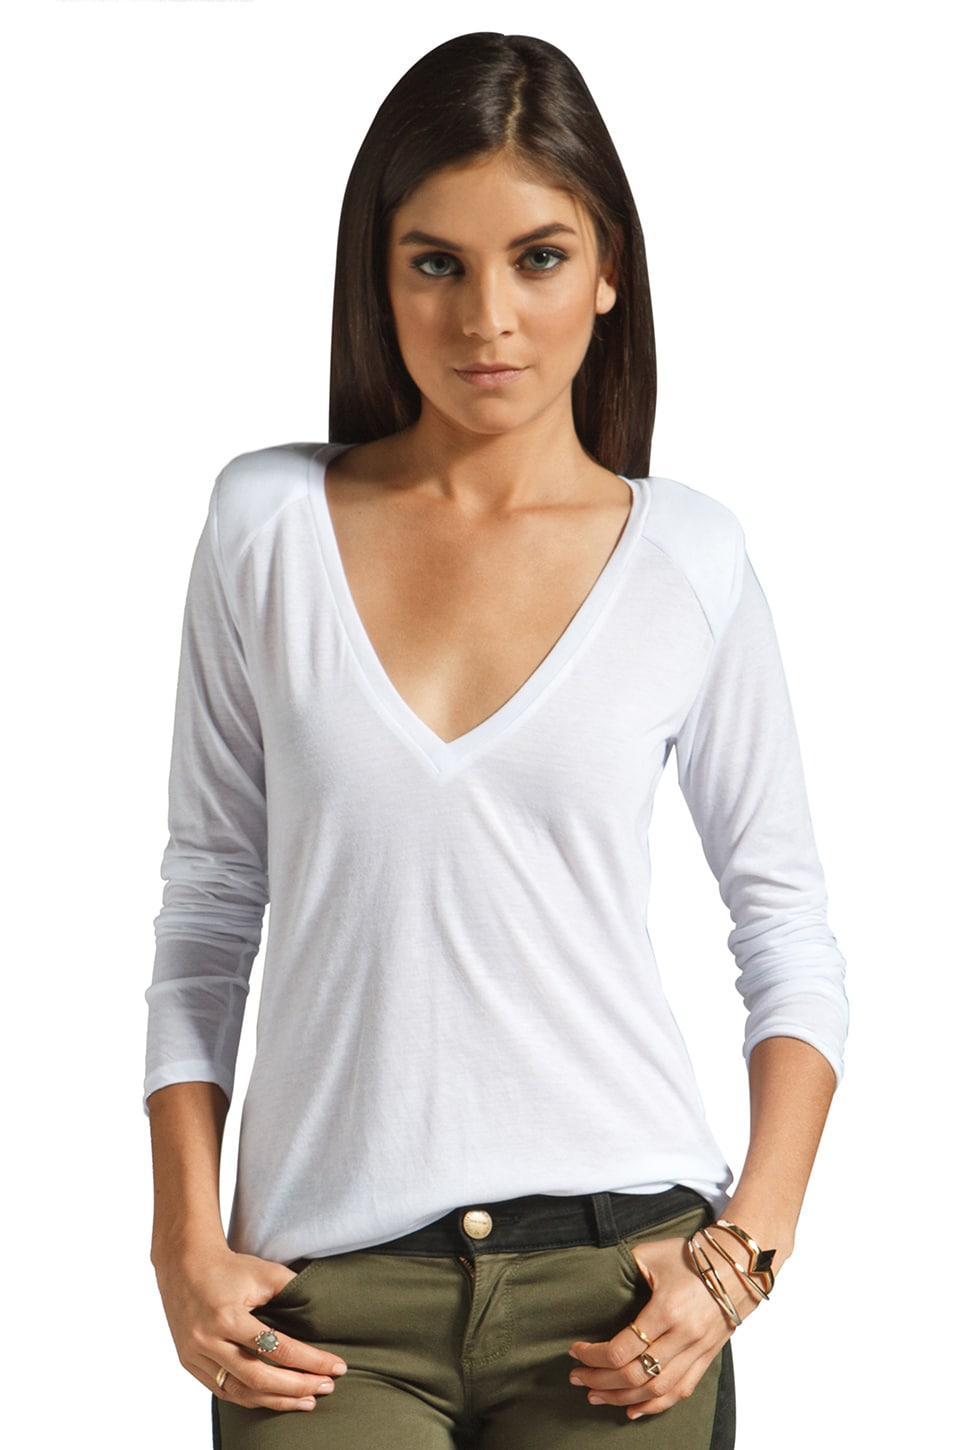 Blue Life Sport Your Shoulder Long Sleeve Tee in White